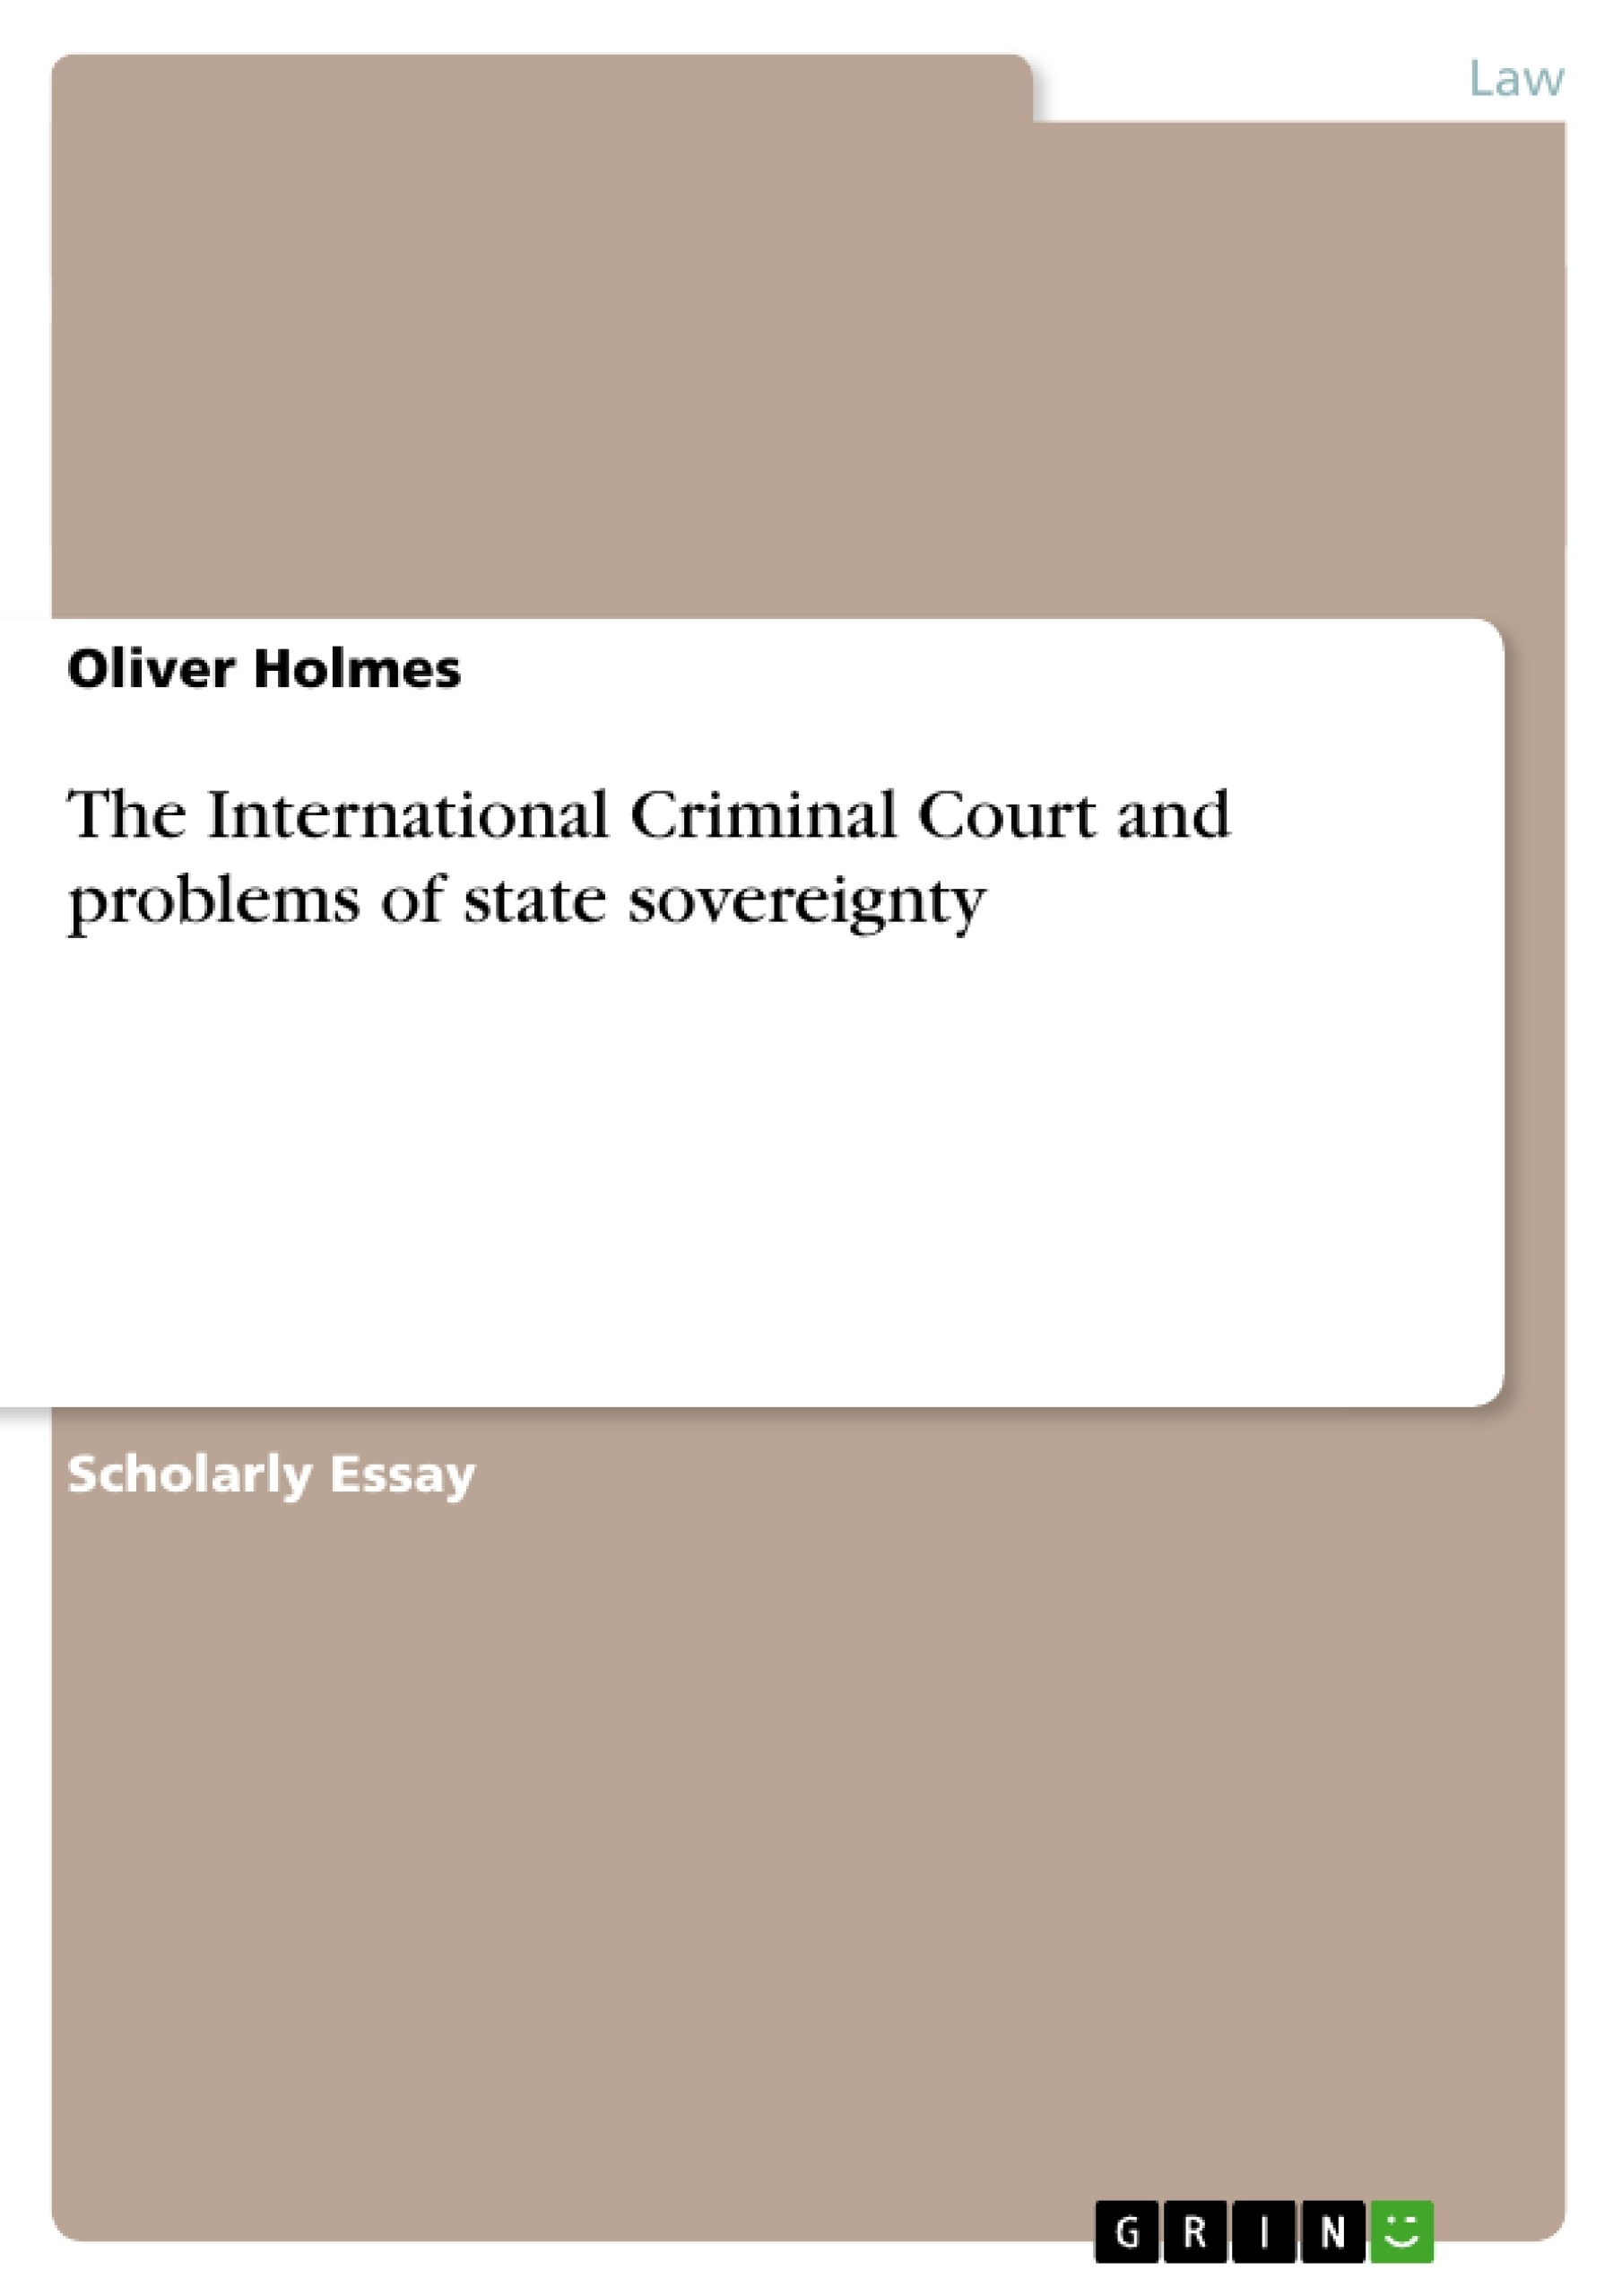 the international criminal court and problems of state sovereignty upload your own papers earn money and win an iphone 7